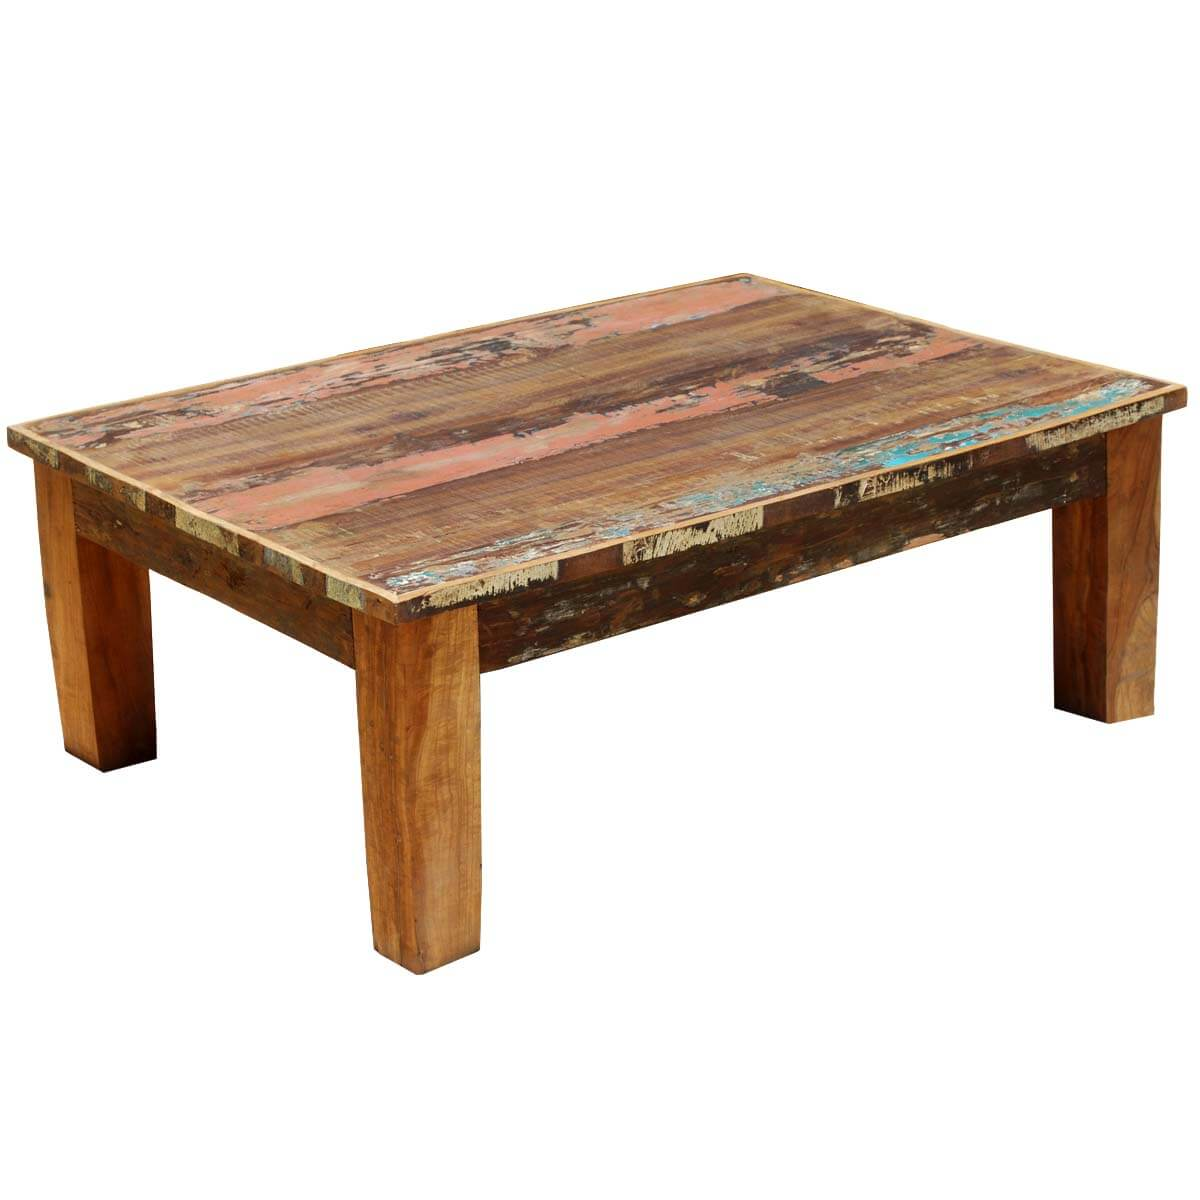 Salvaged Wood Coffee Table ~ Appalachian rustic mixed reclaimed wood coffee table